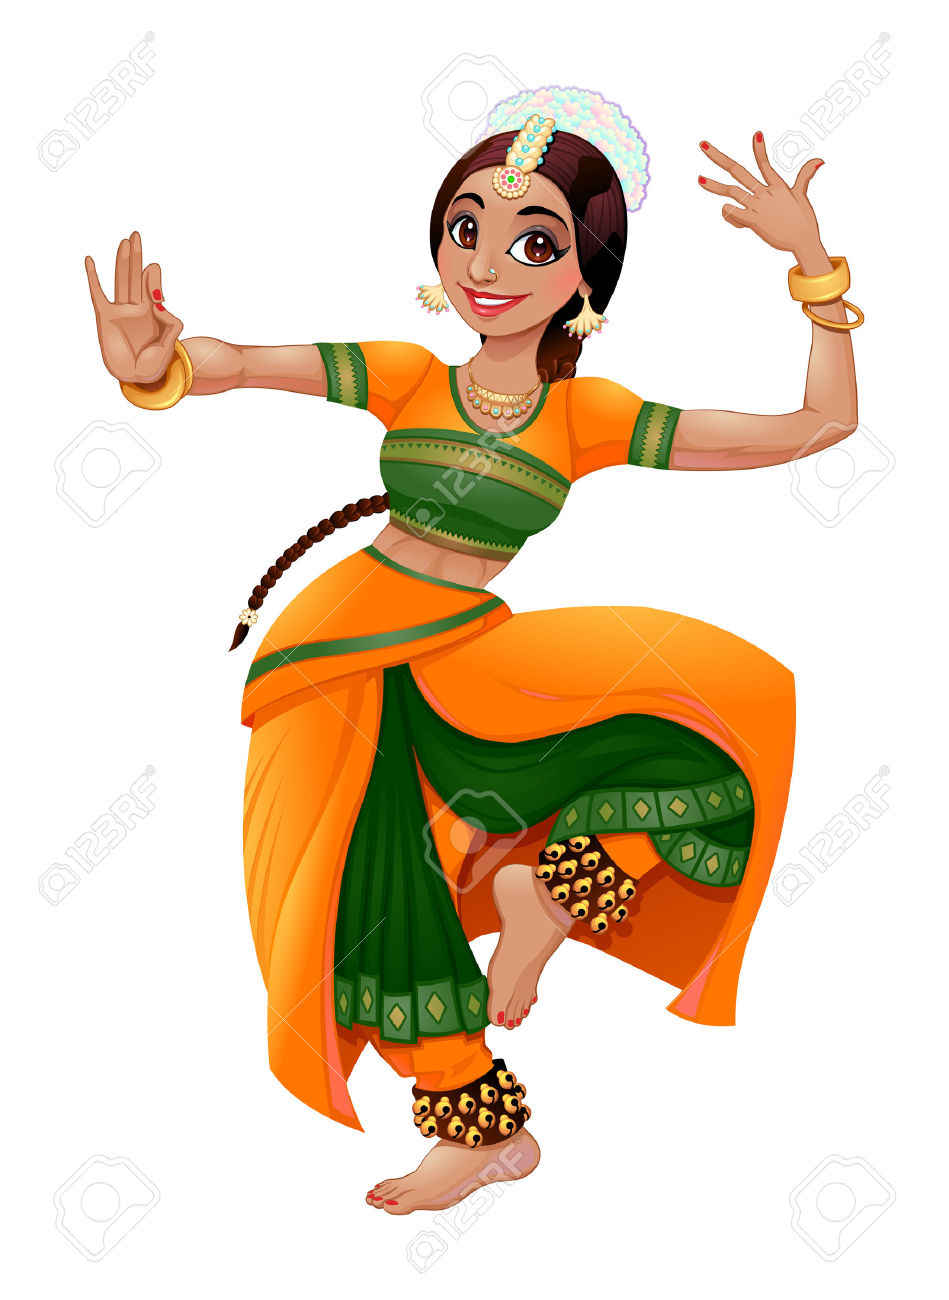 Indian dance clipart 20 free Cliparts | Download images on ... |Bollywood Dancer Clipart